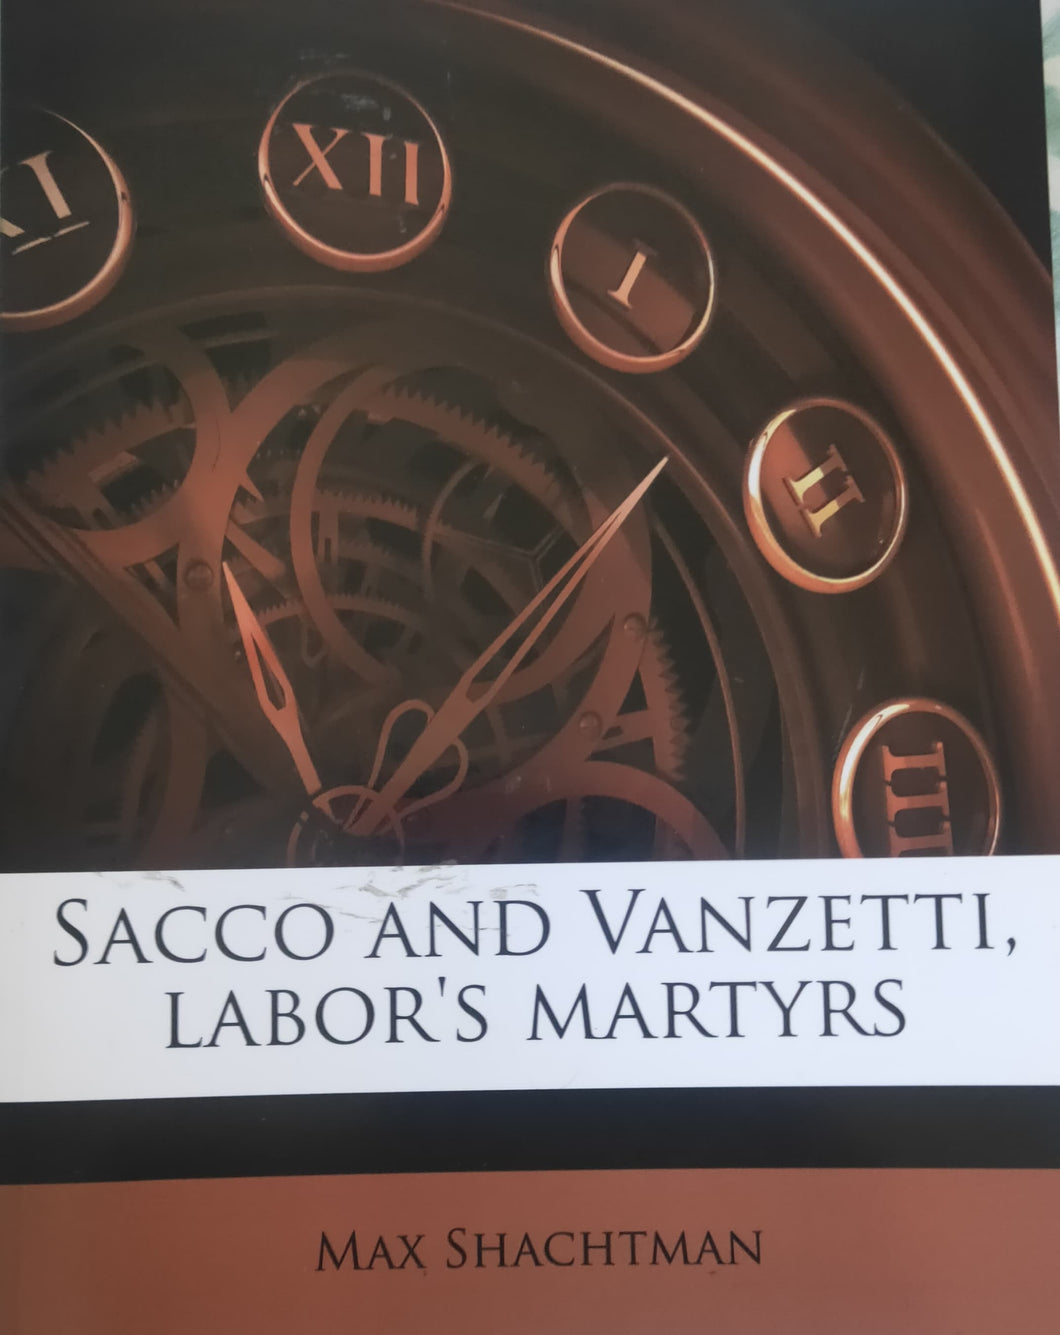 Sacco and VanZetti, Labor's Martyrs